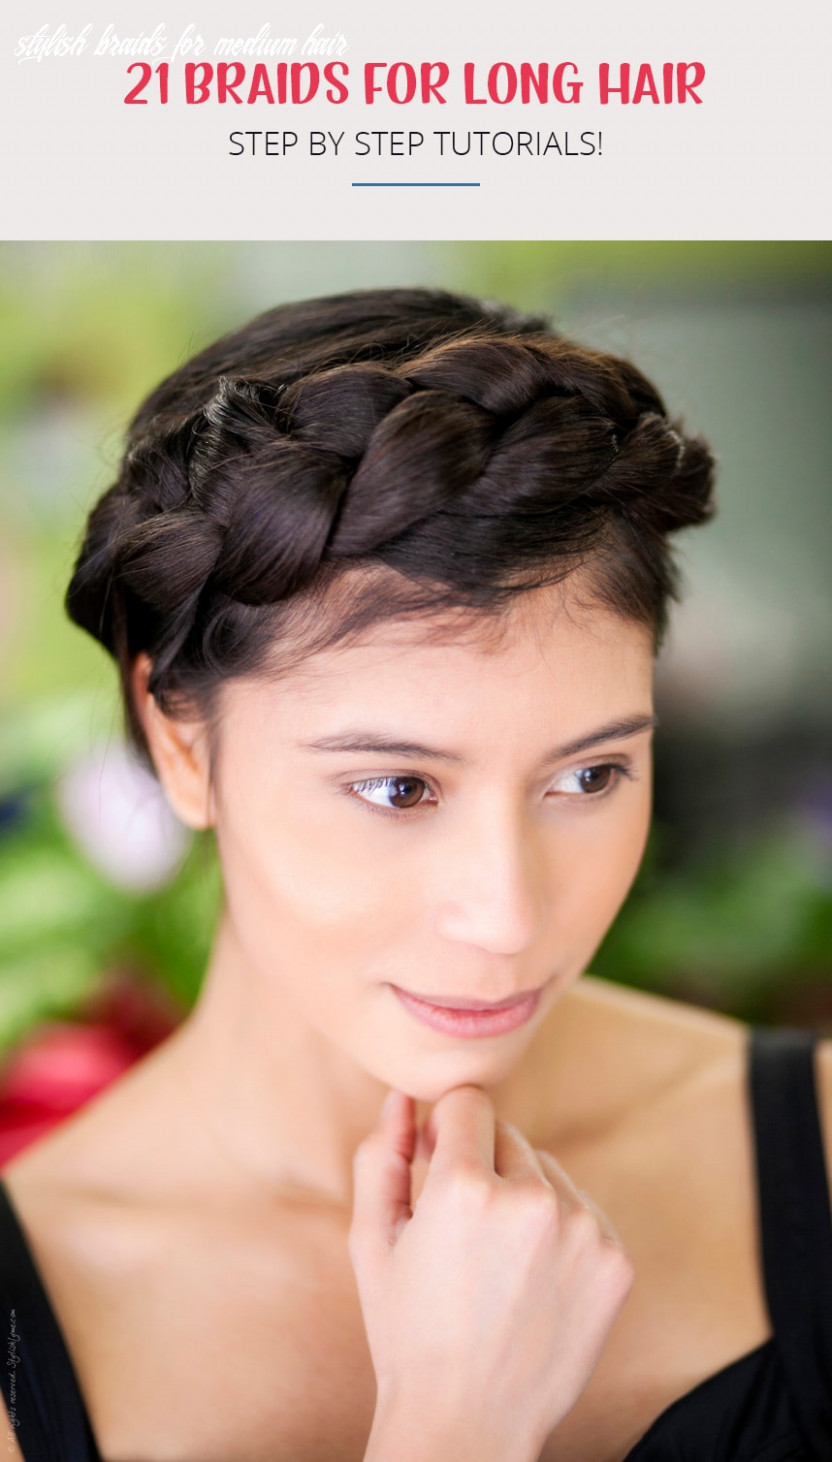 12 Braids for Long Hair with Step by Step Tutorials!